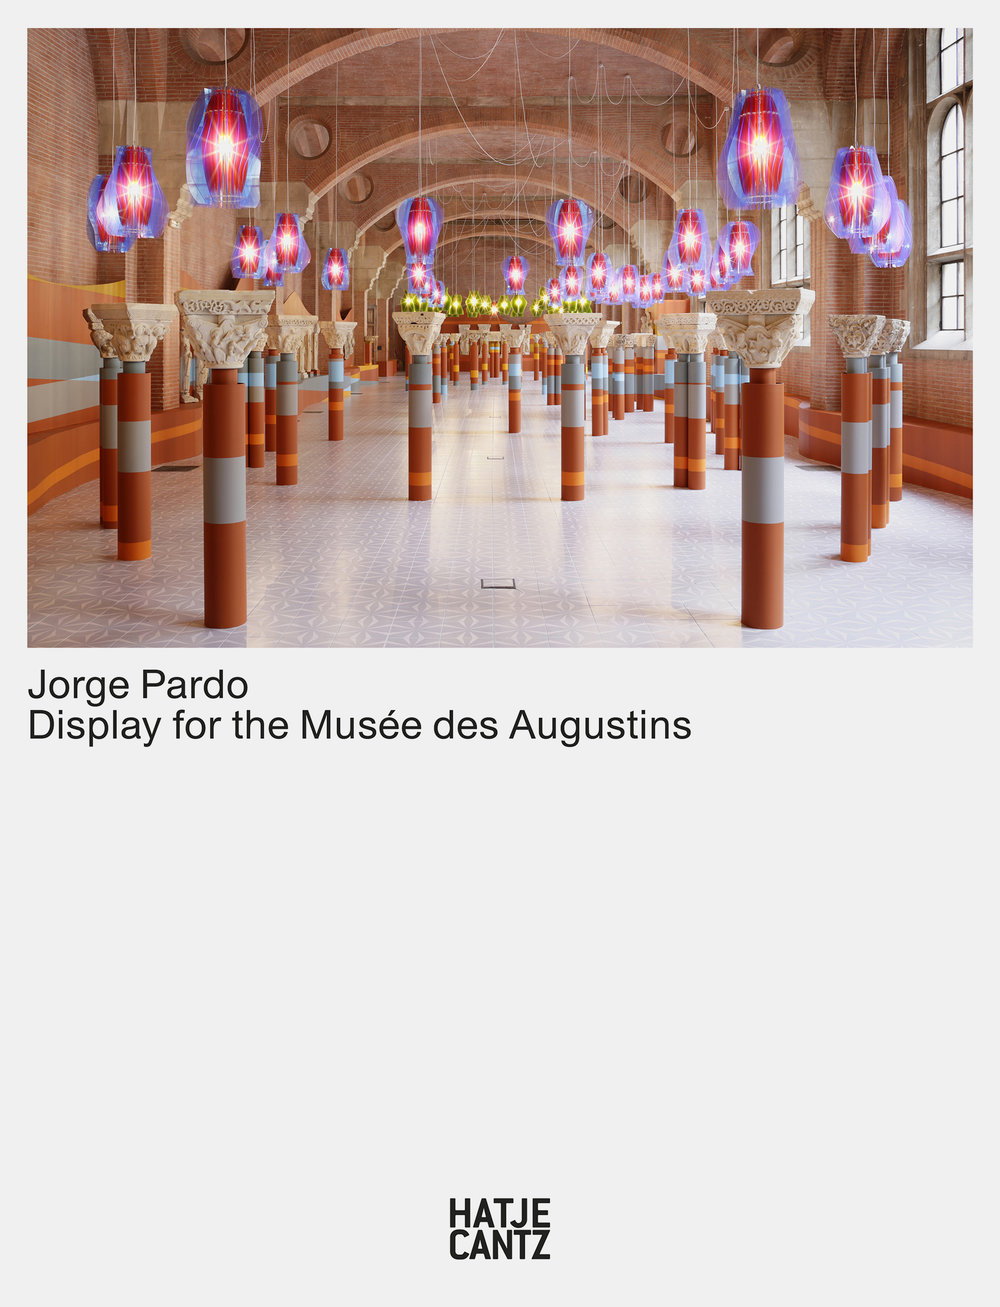 Jorge-Pardo-Display-for-the-musee-des-augustins-jorge-pardo.jpg